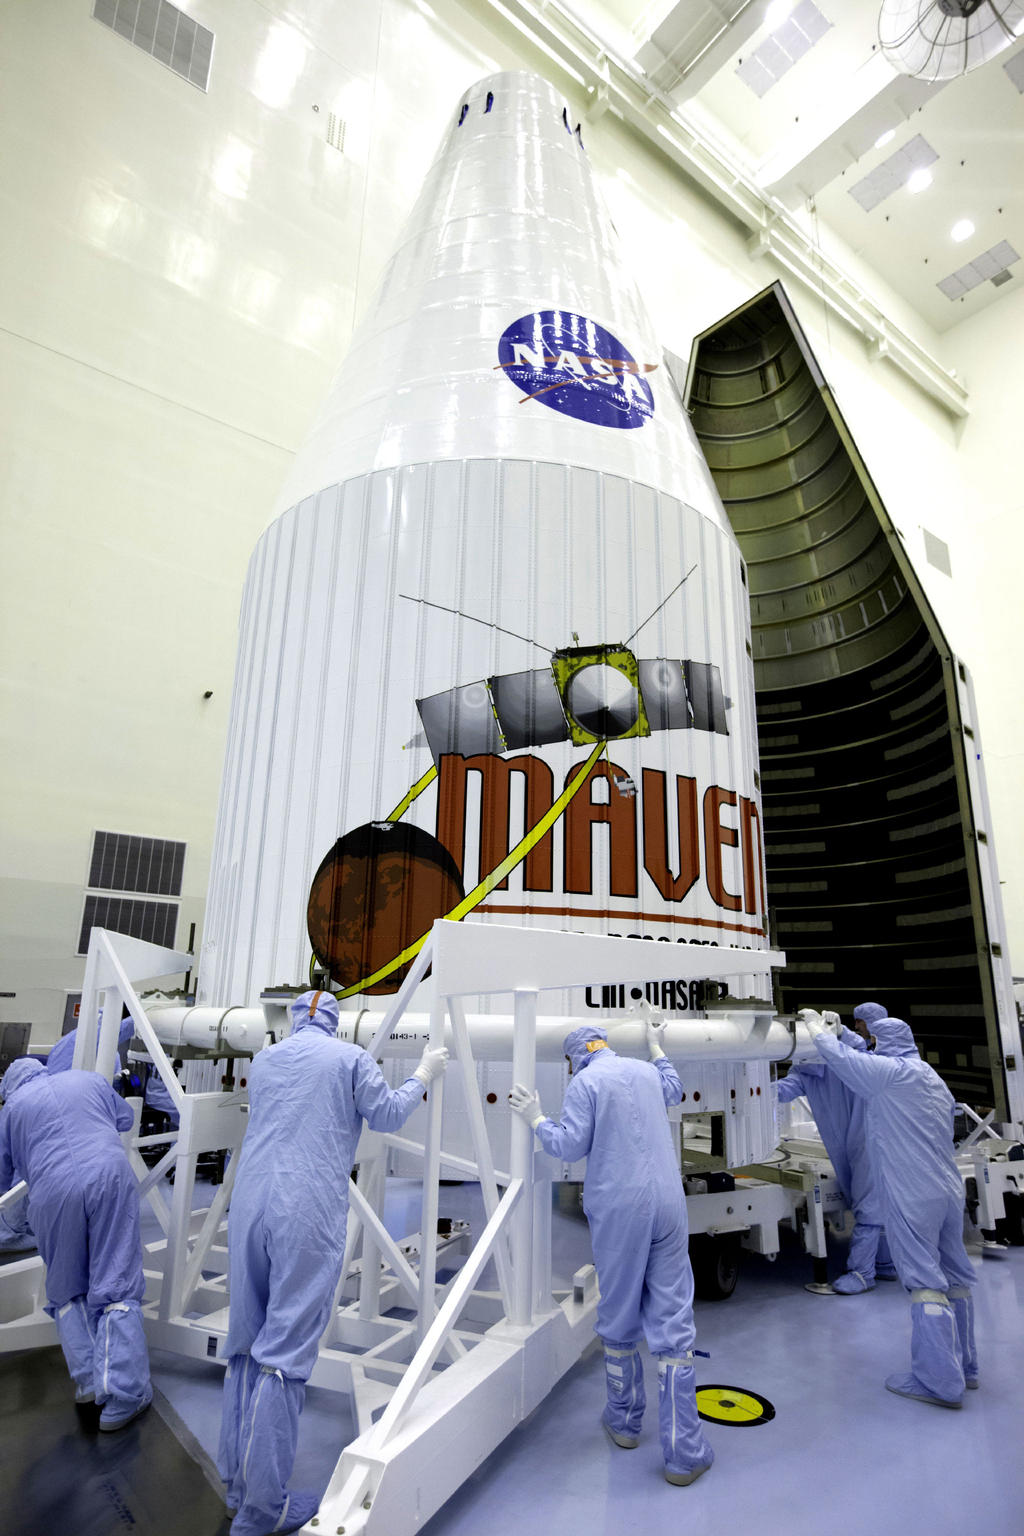 The payload fairing for the Mars Atmosphere and Volatile Evolution, or MAVEN, spacecraft arrives at the Payload Hazardous Servicing Facility at NASA's Kennedy Space Center in Florida.